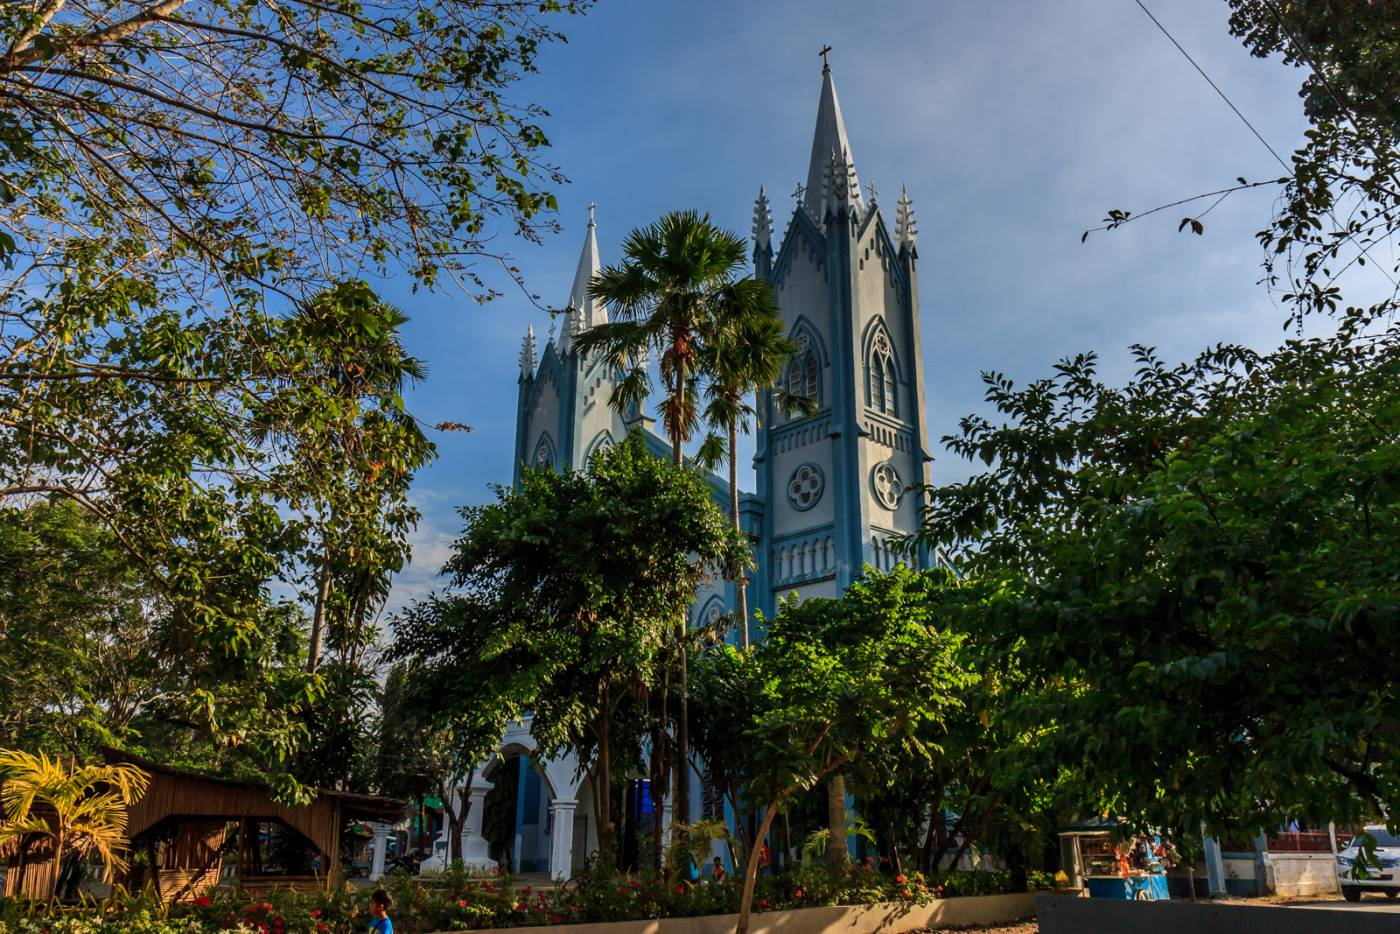 The Puerto Princesa cathedral.